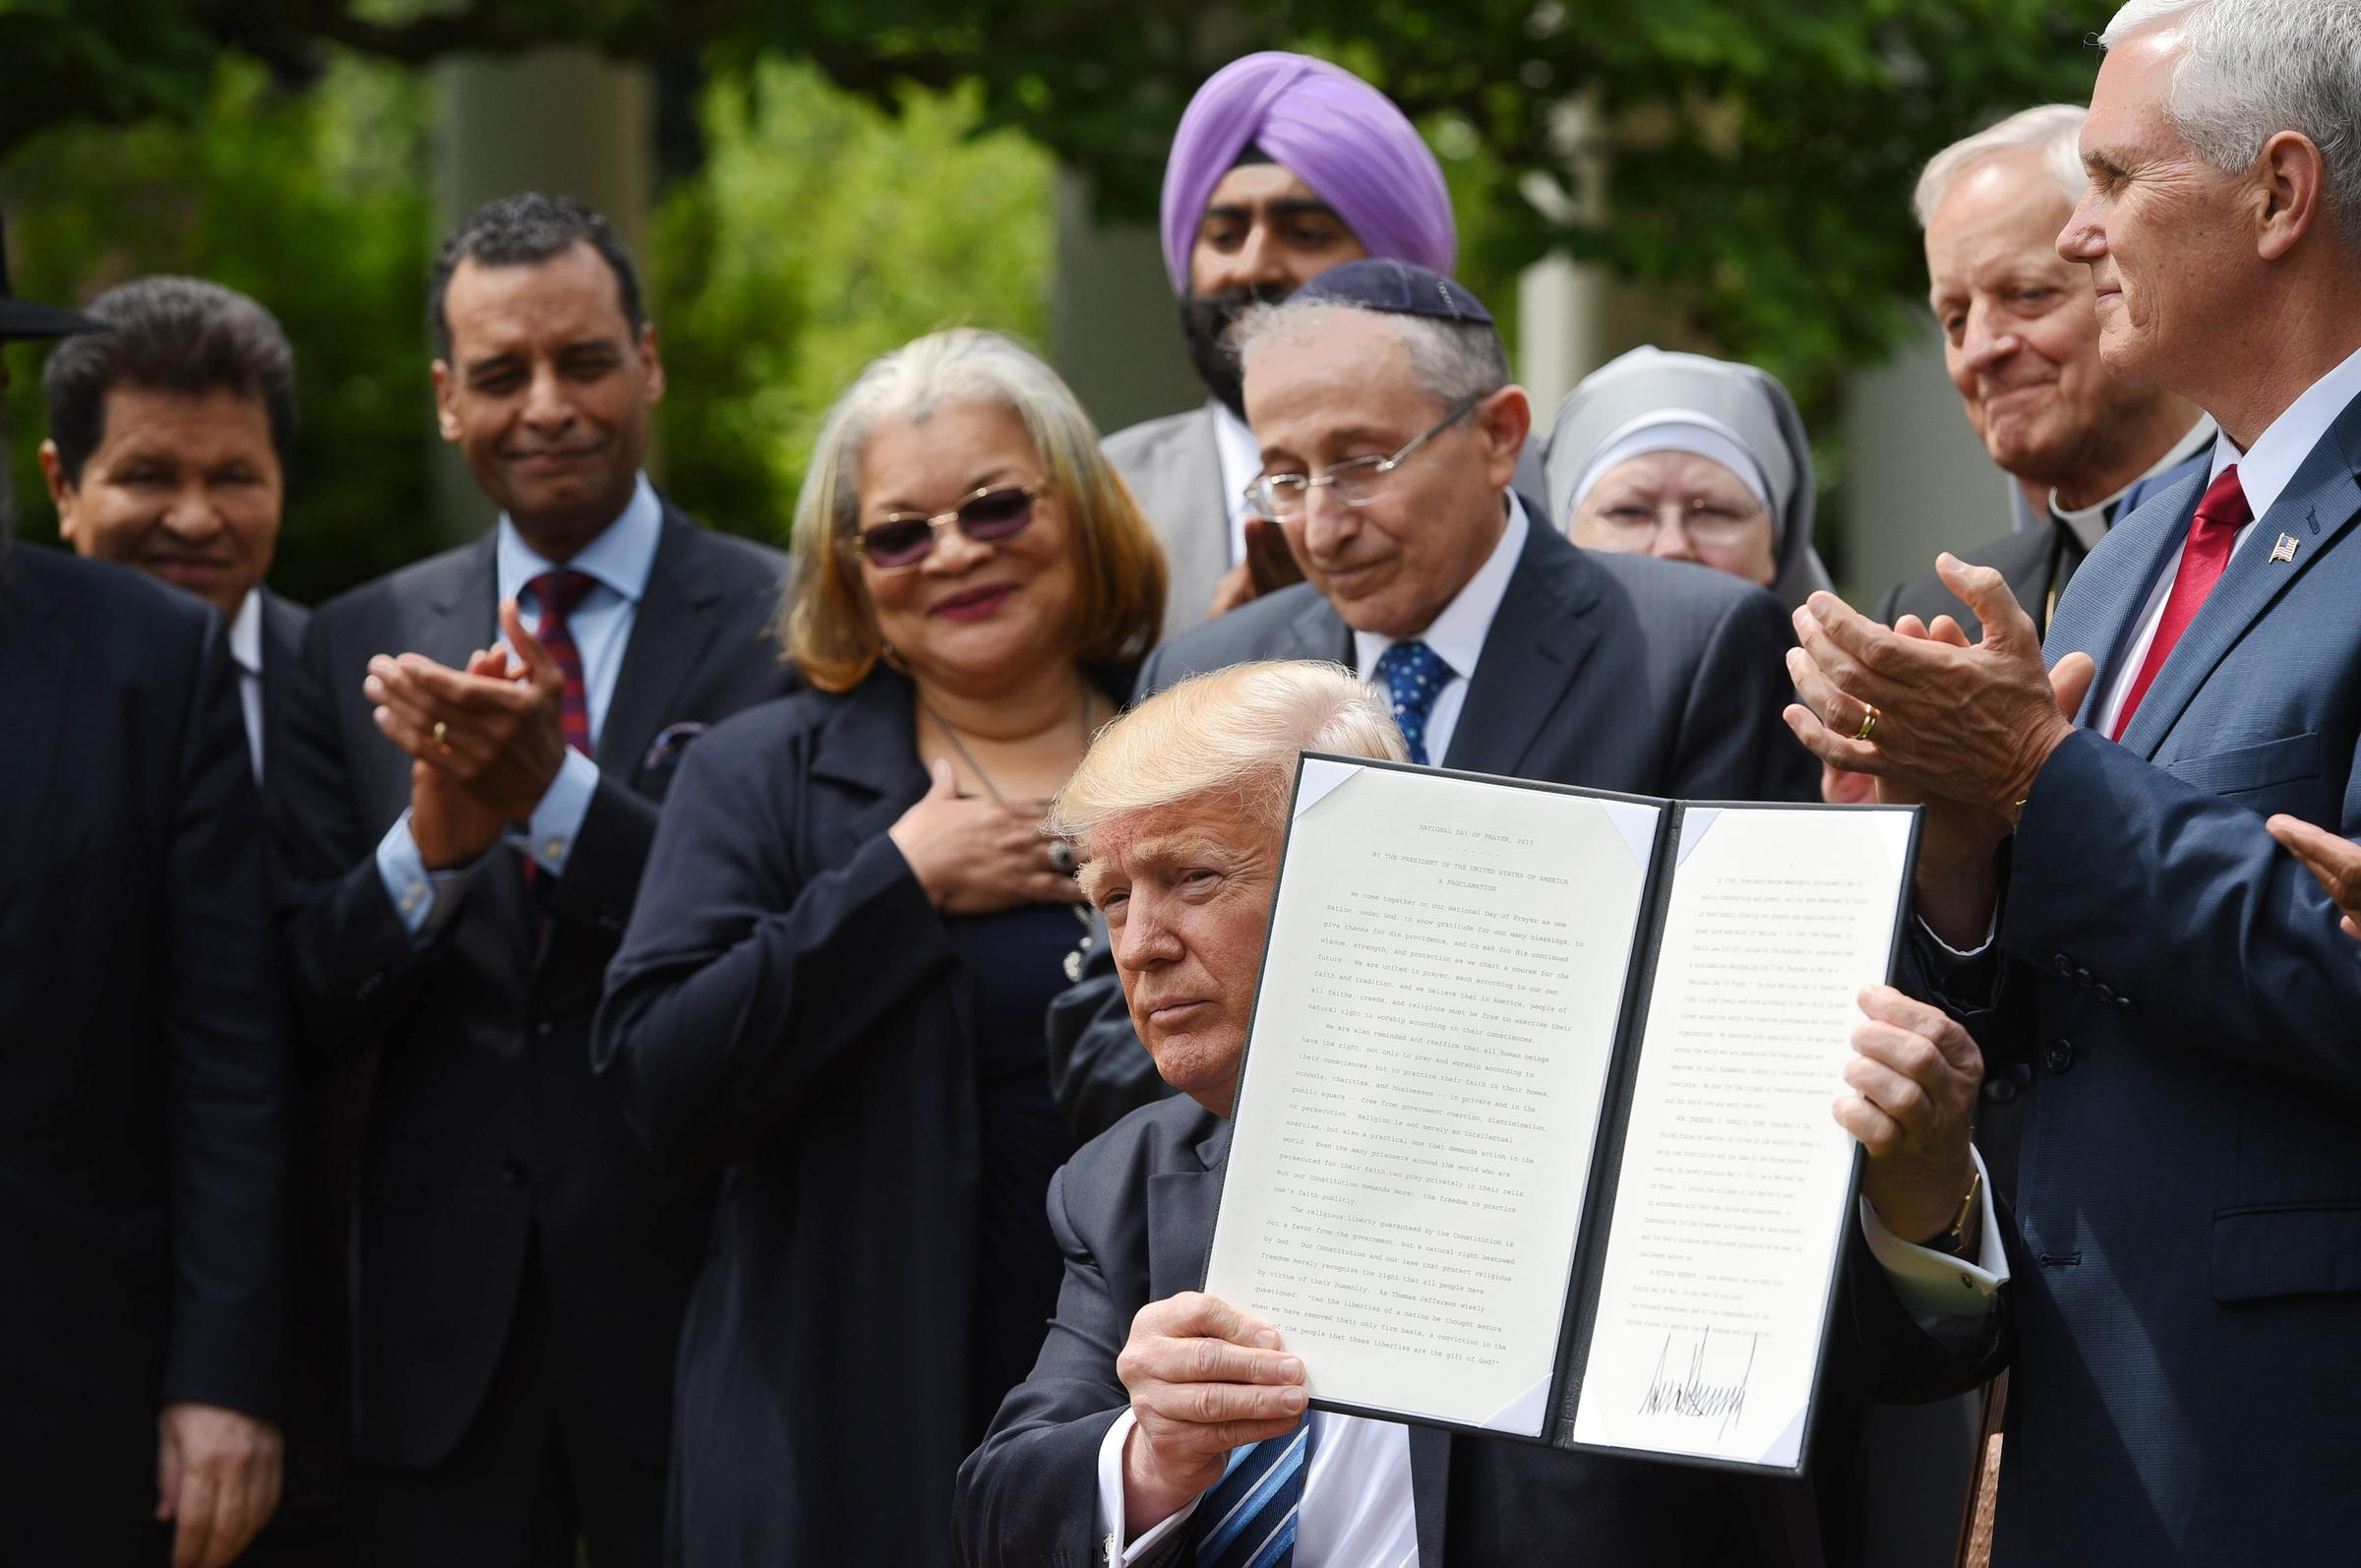 Atheist Group Jumps to Sue Trump Over Religious Liberty Executive Order